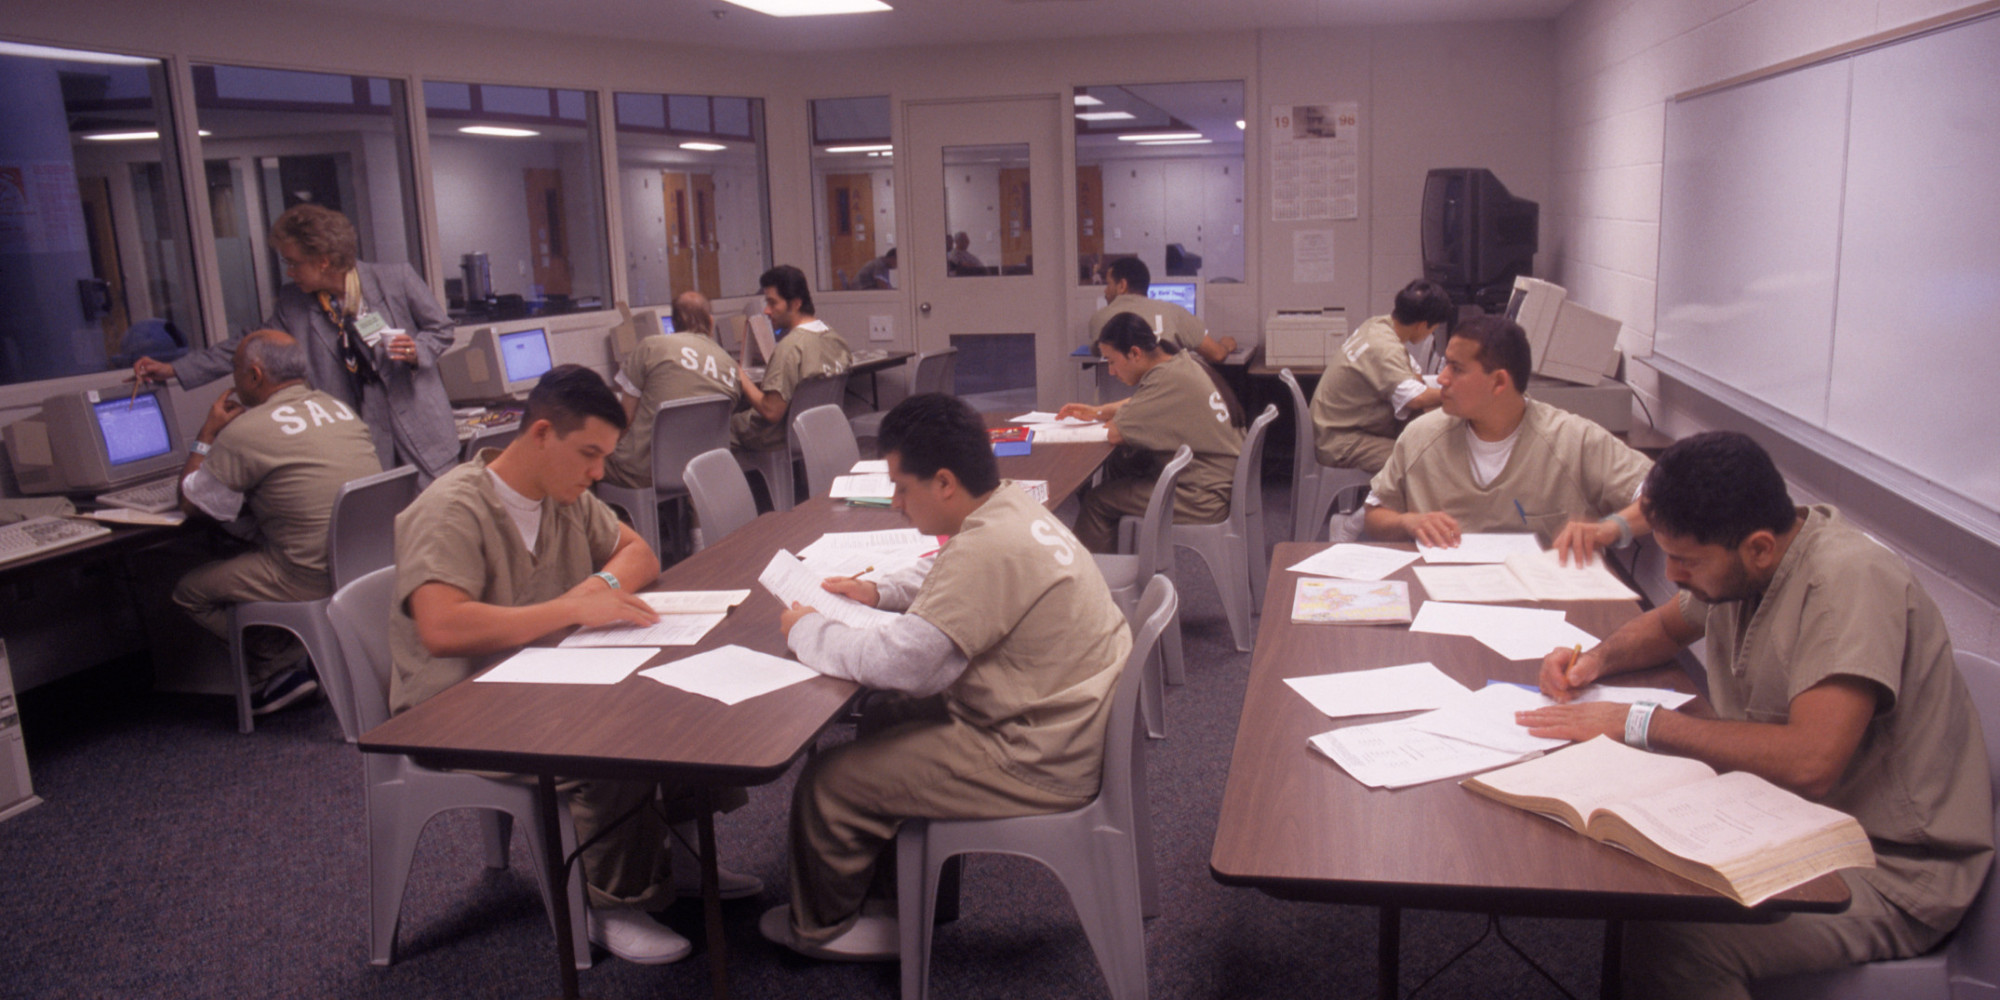 Reintegration of prisoners essay